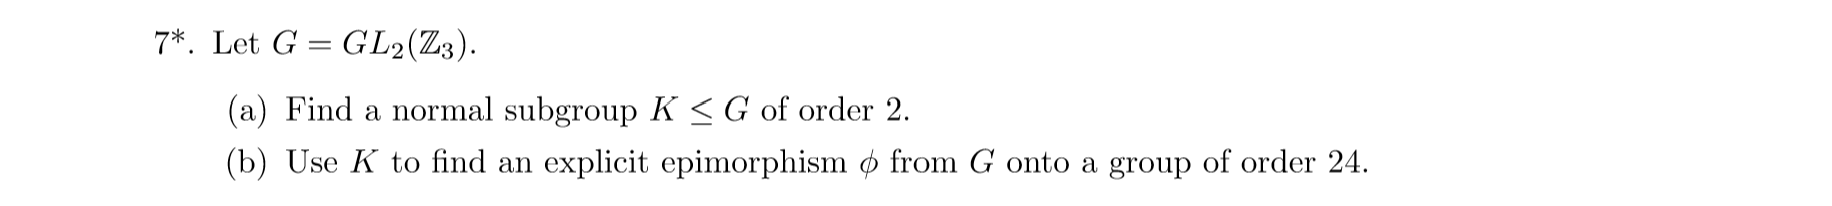 7 Let G GL2(Z3). (a) Find a normal subgroup K <G of order 2. (b) Use K to find an explicit epimorphism ø from G onto a group of order 24